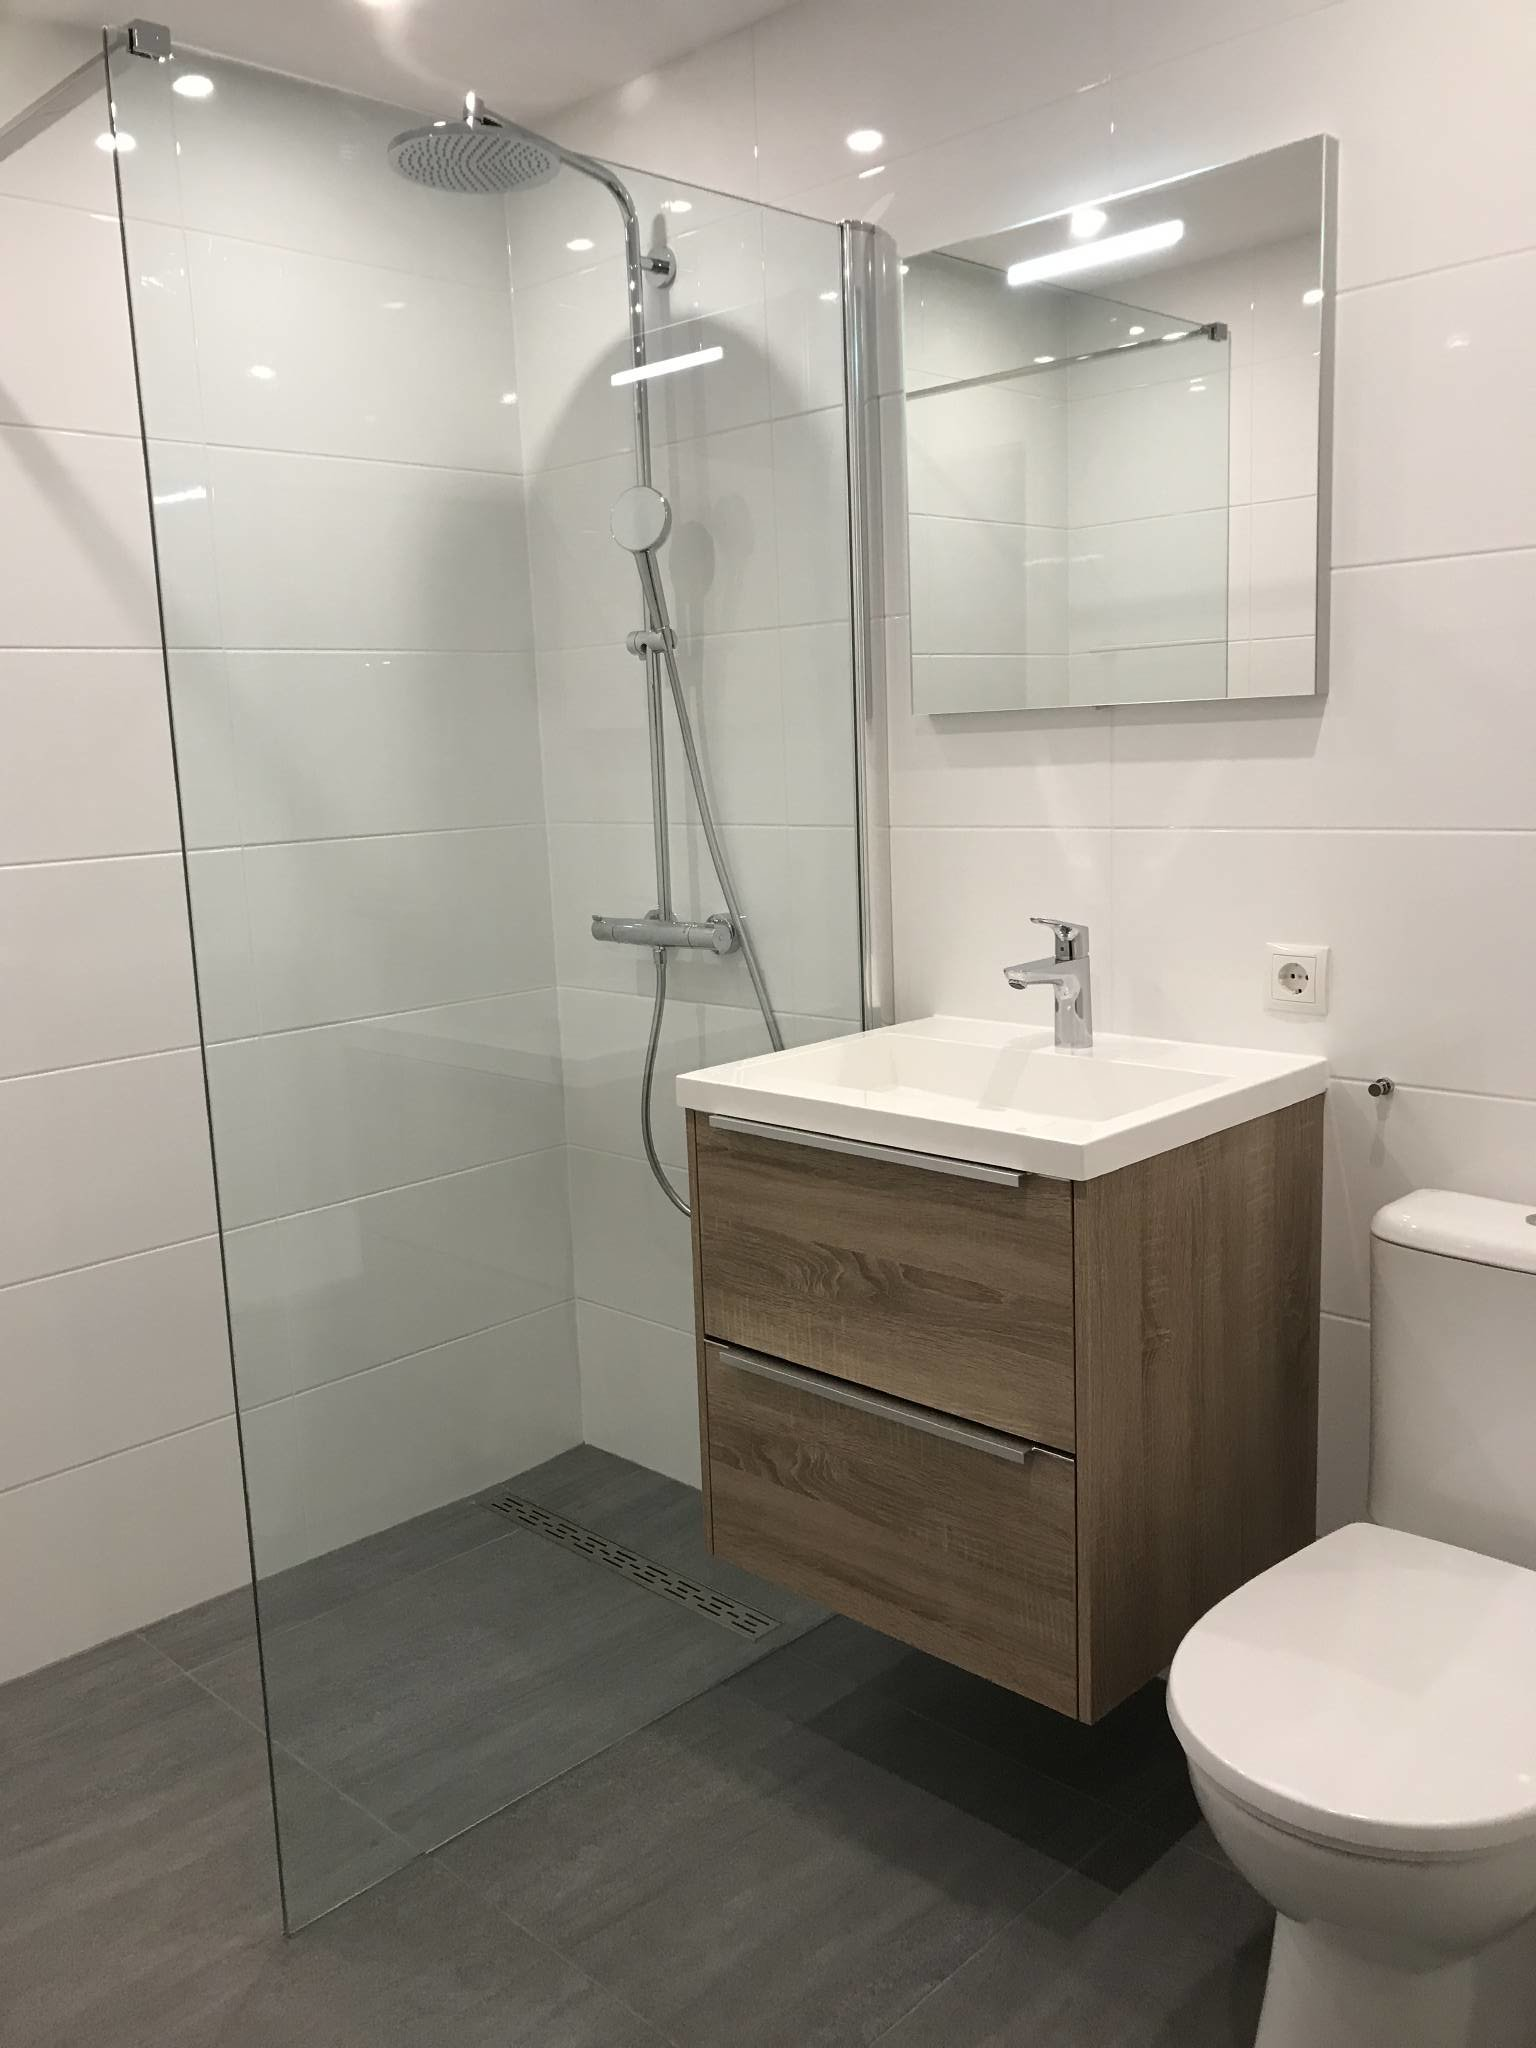 Badezimmer Mit Regendusche Beach Apartment Callantsoog Nr 24 In Callantsoog Noord Holland